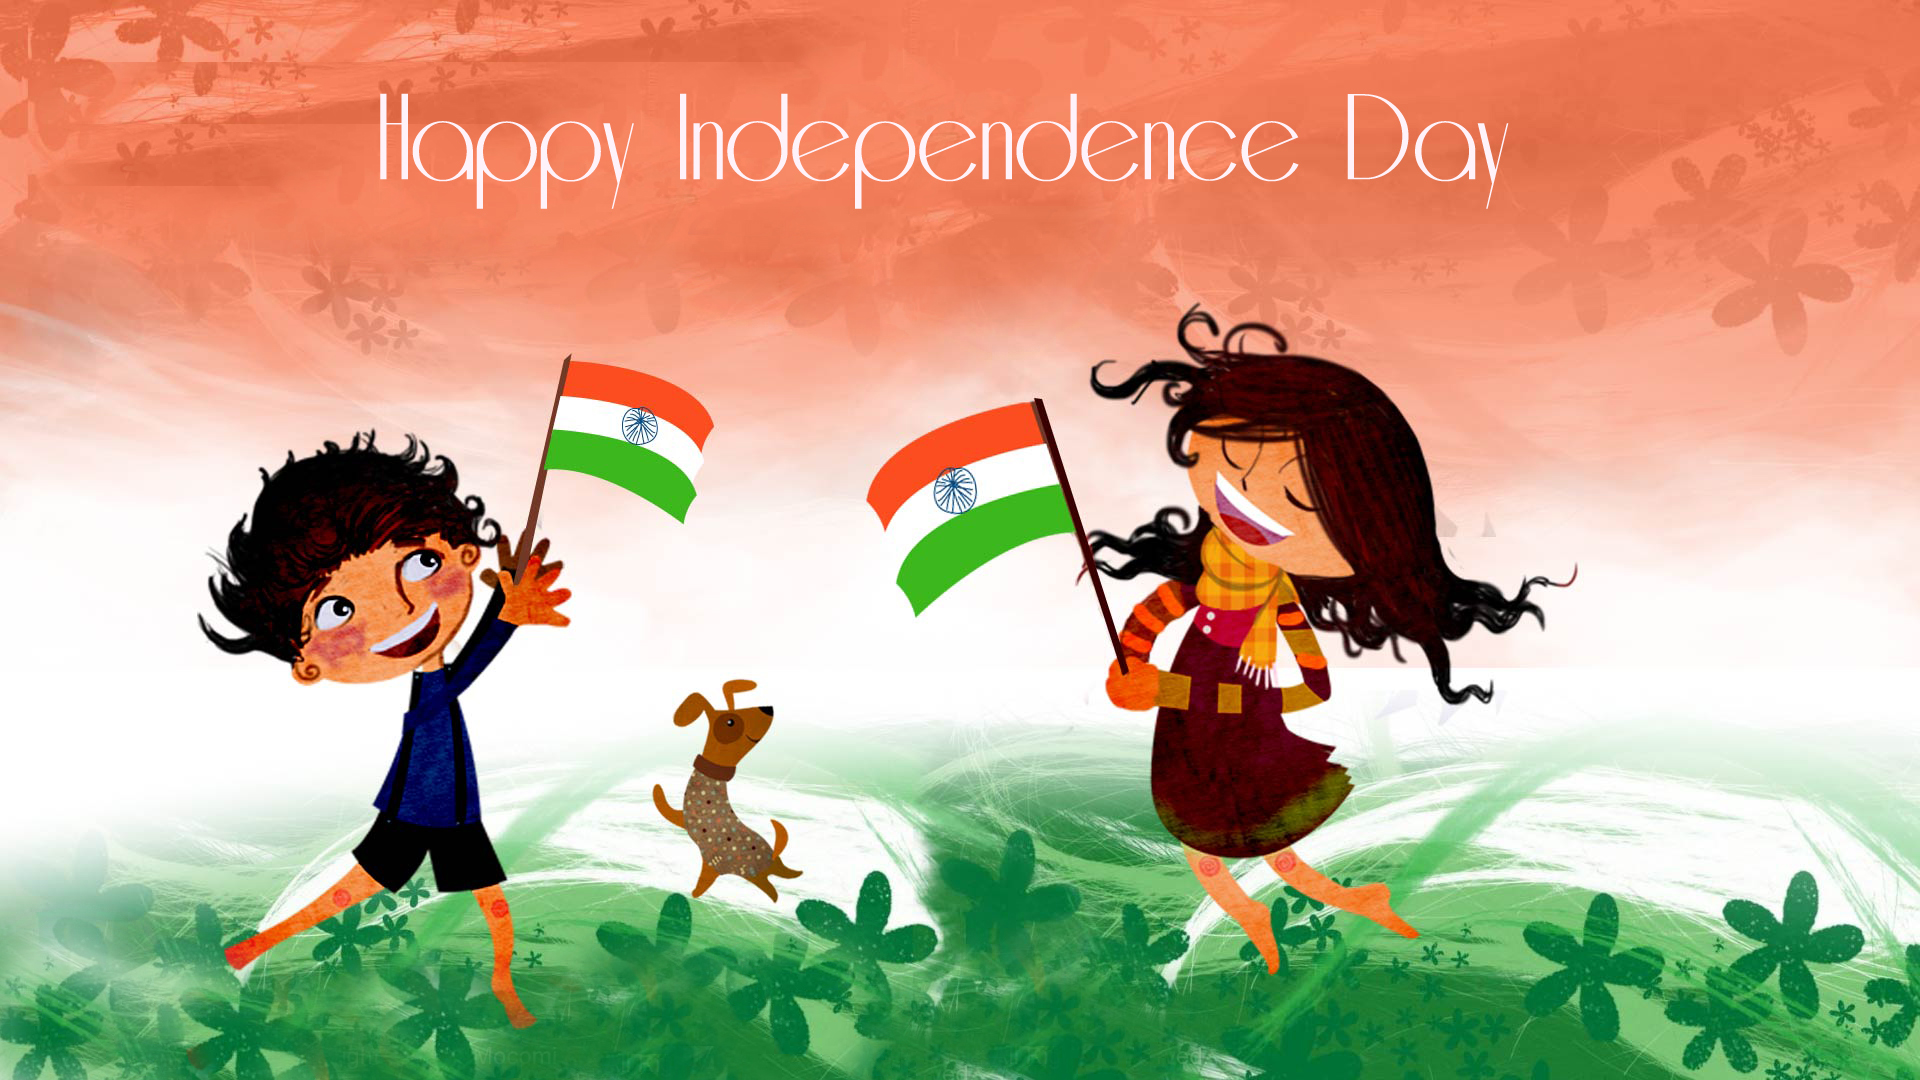 Happy Independence Day 2013 HD Wallpaper 1920x1080